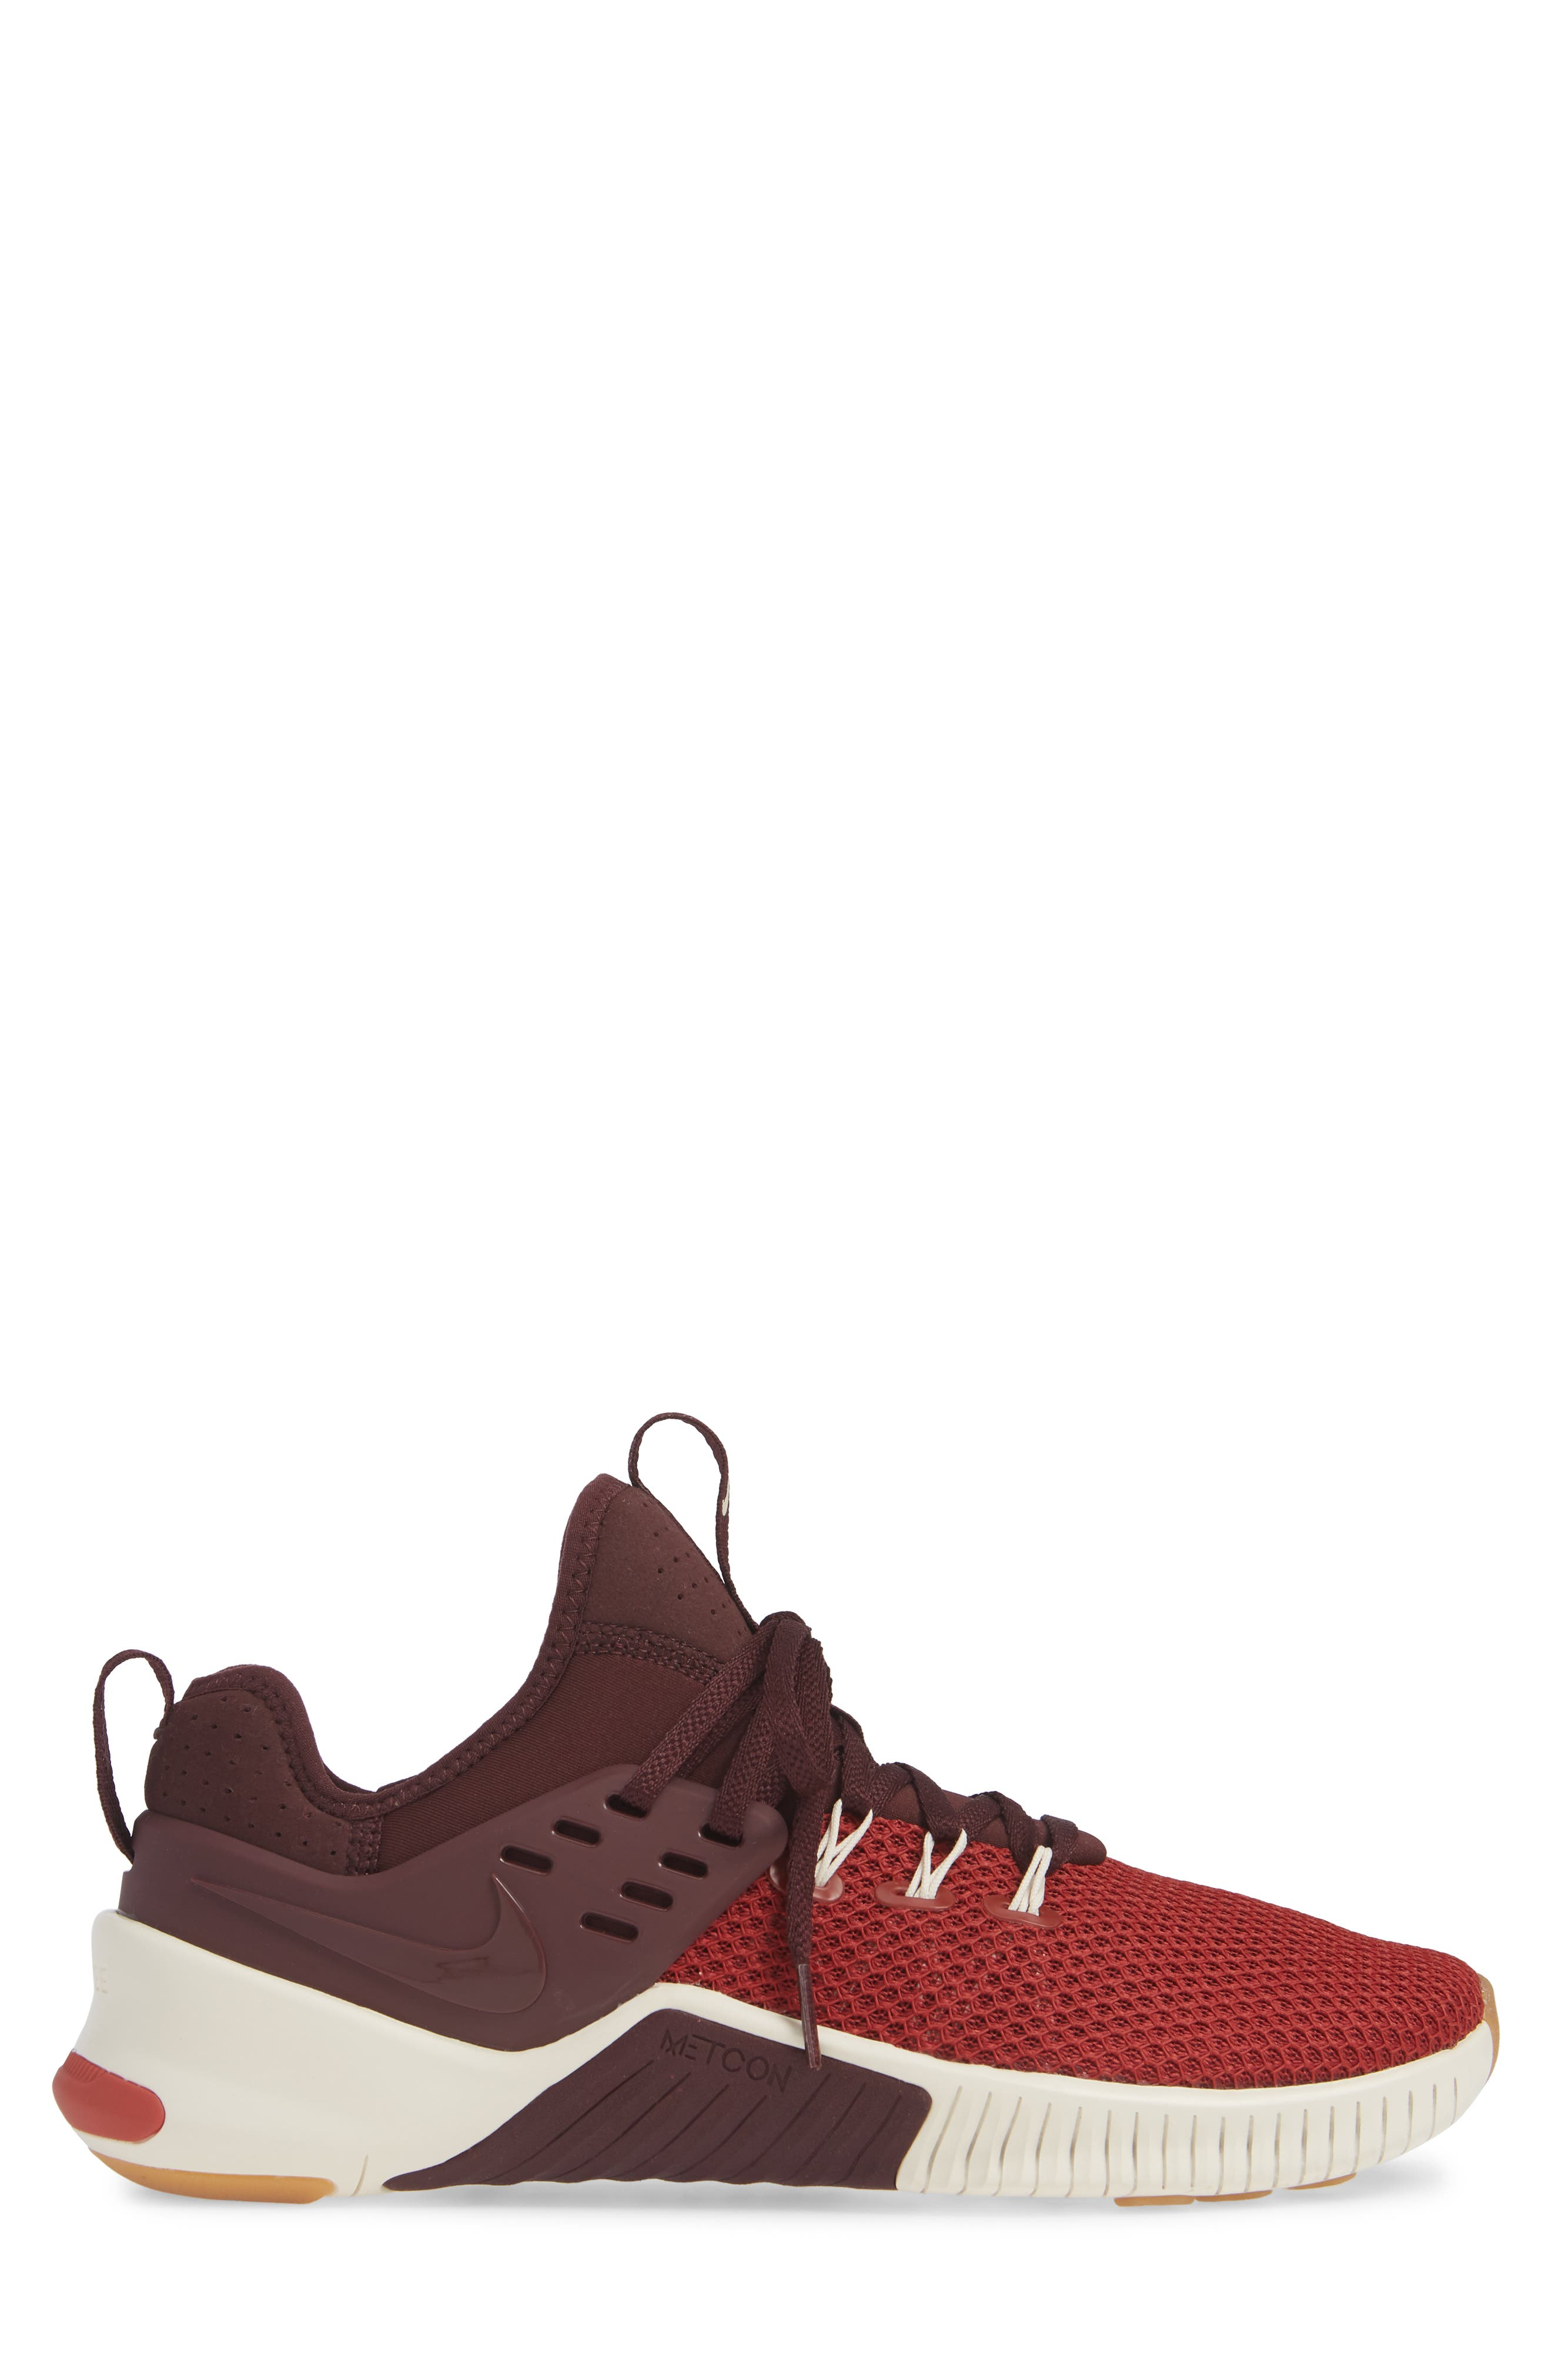 Free x Metcon Training Shoe,                             Alternate thumbnail 3, color,                             936